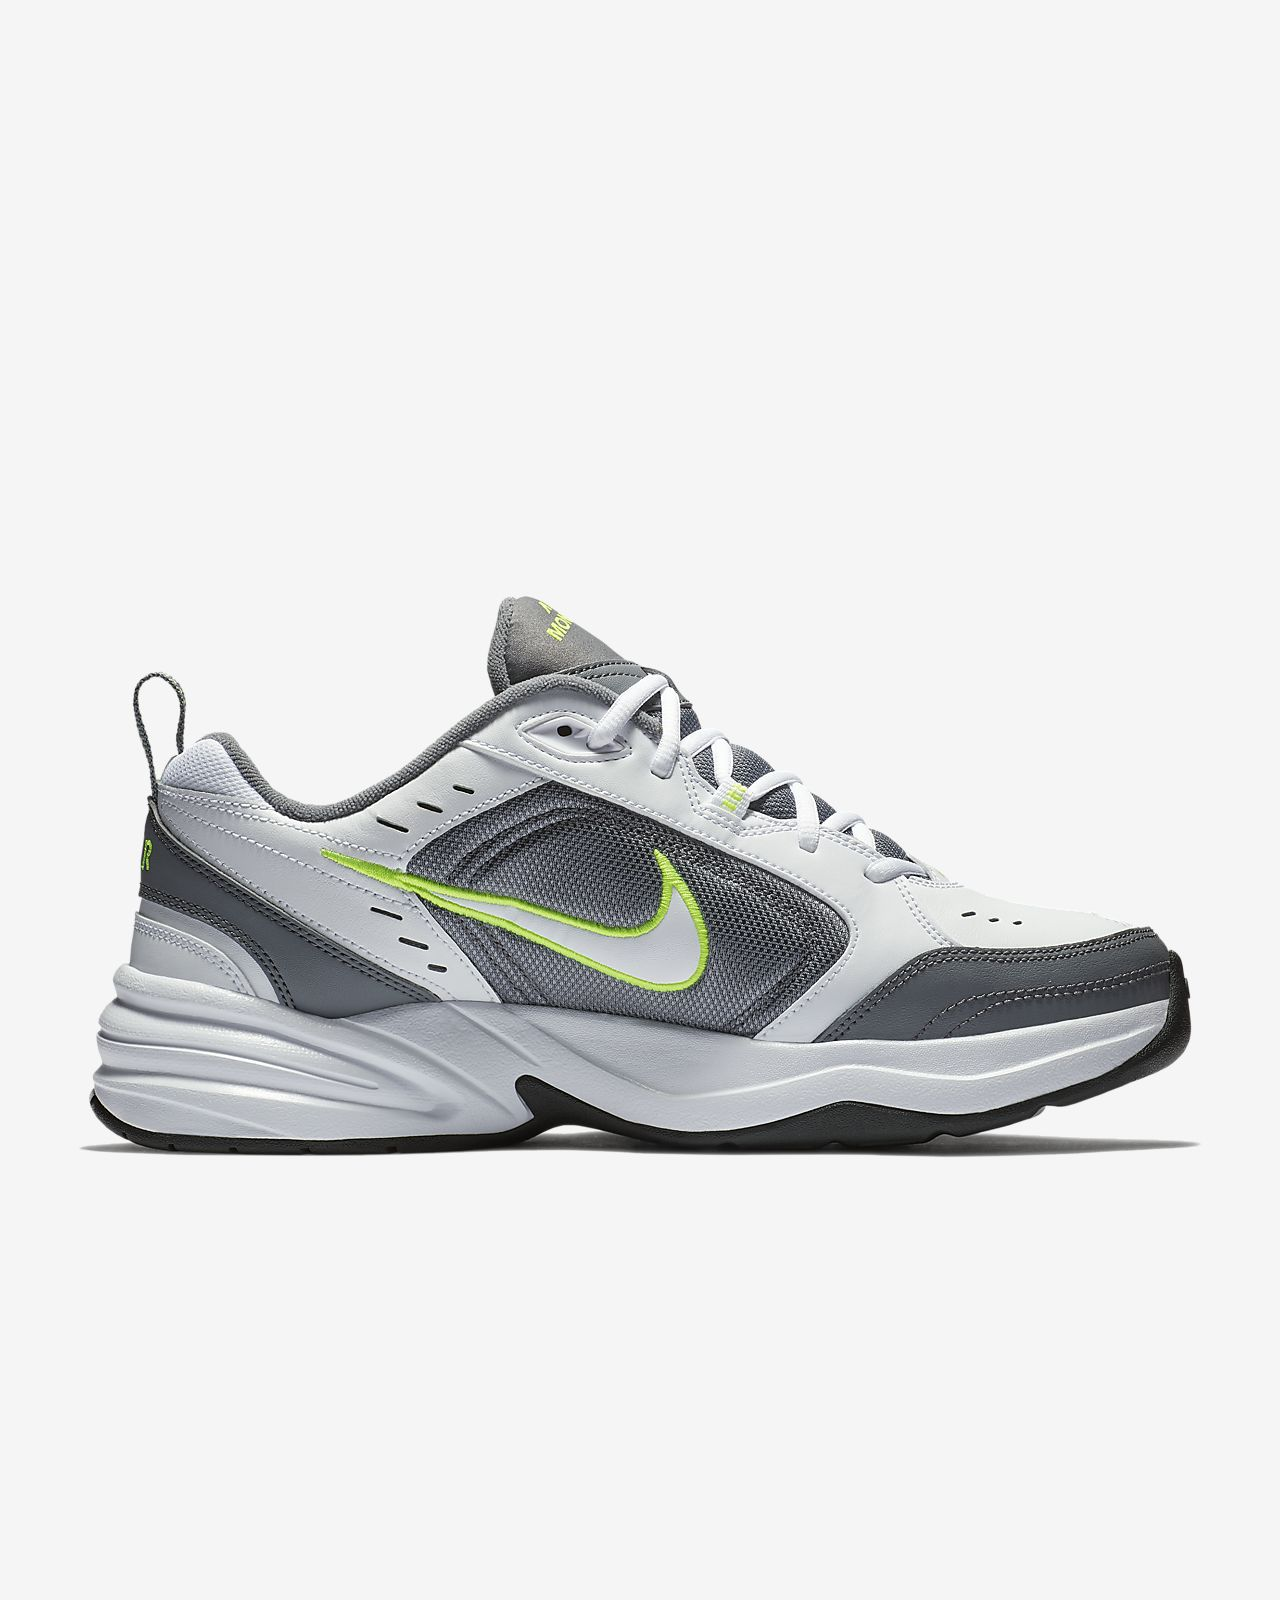 free shipping 5987a 1178a ... Nike Air Monarch IV Lifestyle Gym Shoe